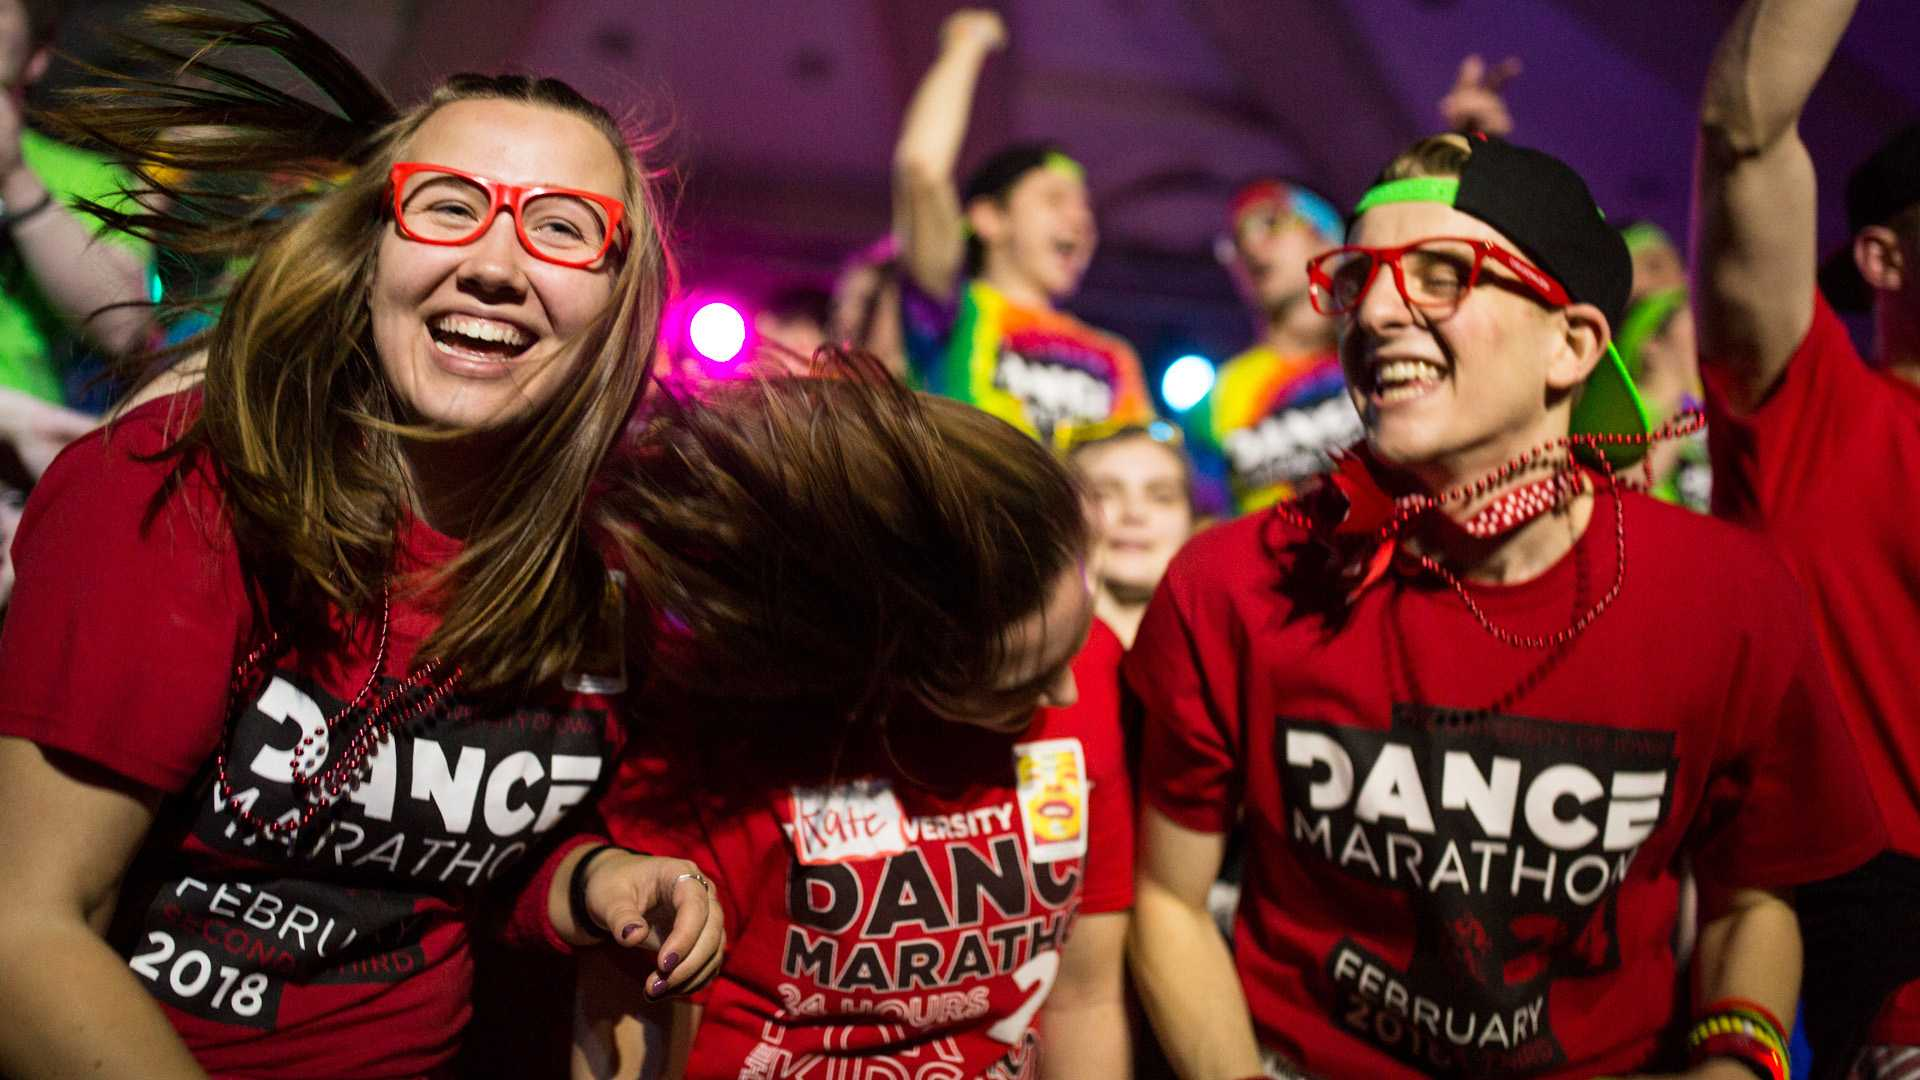 Dance marathon participants dance on stage during the ninth hour of the University of Iowa 24th Annual Dance Marathon, on Saturday, Feb. 3, 2018. (David Harmantas/The Daily Iowan)